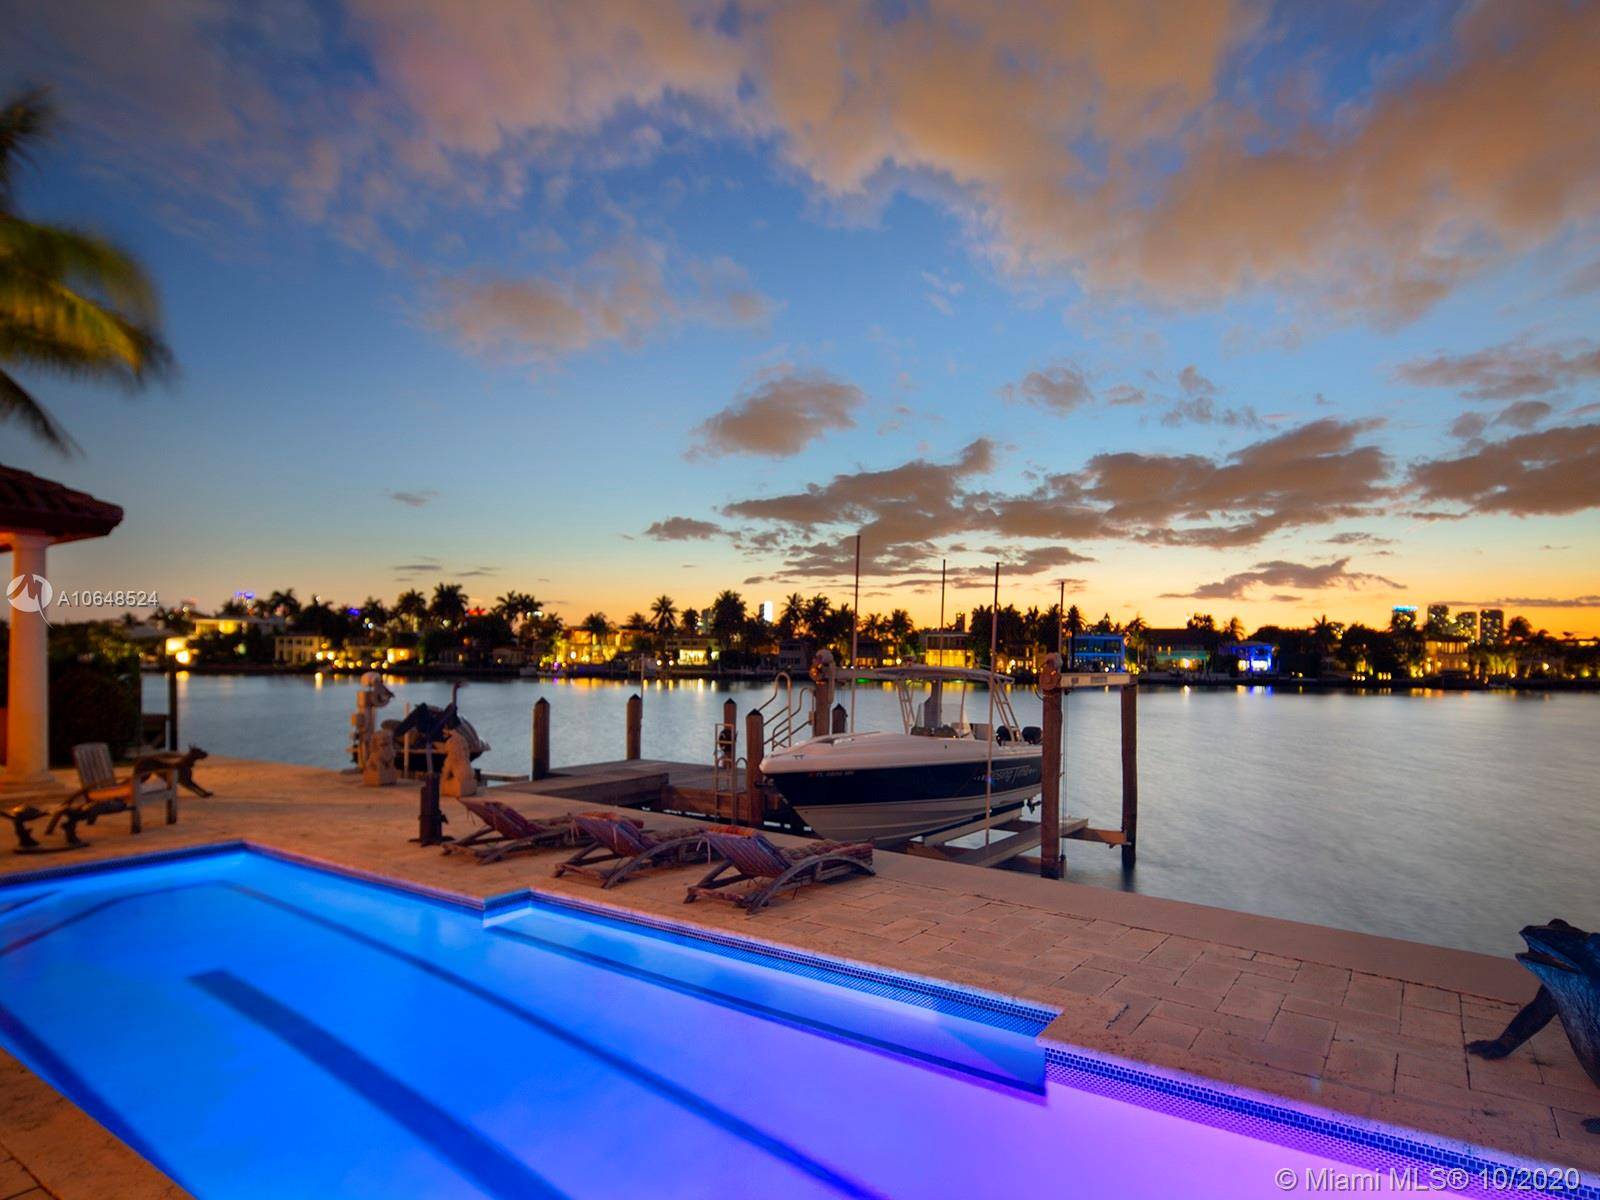 Stunning North Westerly sunset views from this beautiful Mediterranean waterfront home on the highly sought after north tip on Venetian Islands. Built in 2001 this five bedrooms and five bath home with soaring double height ceilings upon entrance, office with wood panel cabinetry, spacious master suite on second floor with wide bay water views and balcony. Located on the closest Venetian Island to Miami Beach, Rivo Alto Island, this 13,382 sqft pie shape lot with 106 ft of waterfrontage has power lines underground, sidewalks, short walking distance to Lincoln Road and Sunset Harbor retail. Private dock with lift, inground tiled lap pool, and 3.5 car garage, elevator, impact doors and windows, generator, secure gated entry, electronic shutters. Easy to show so call today to schedule a tour!